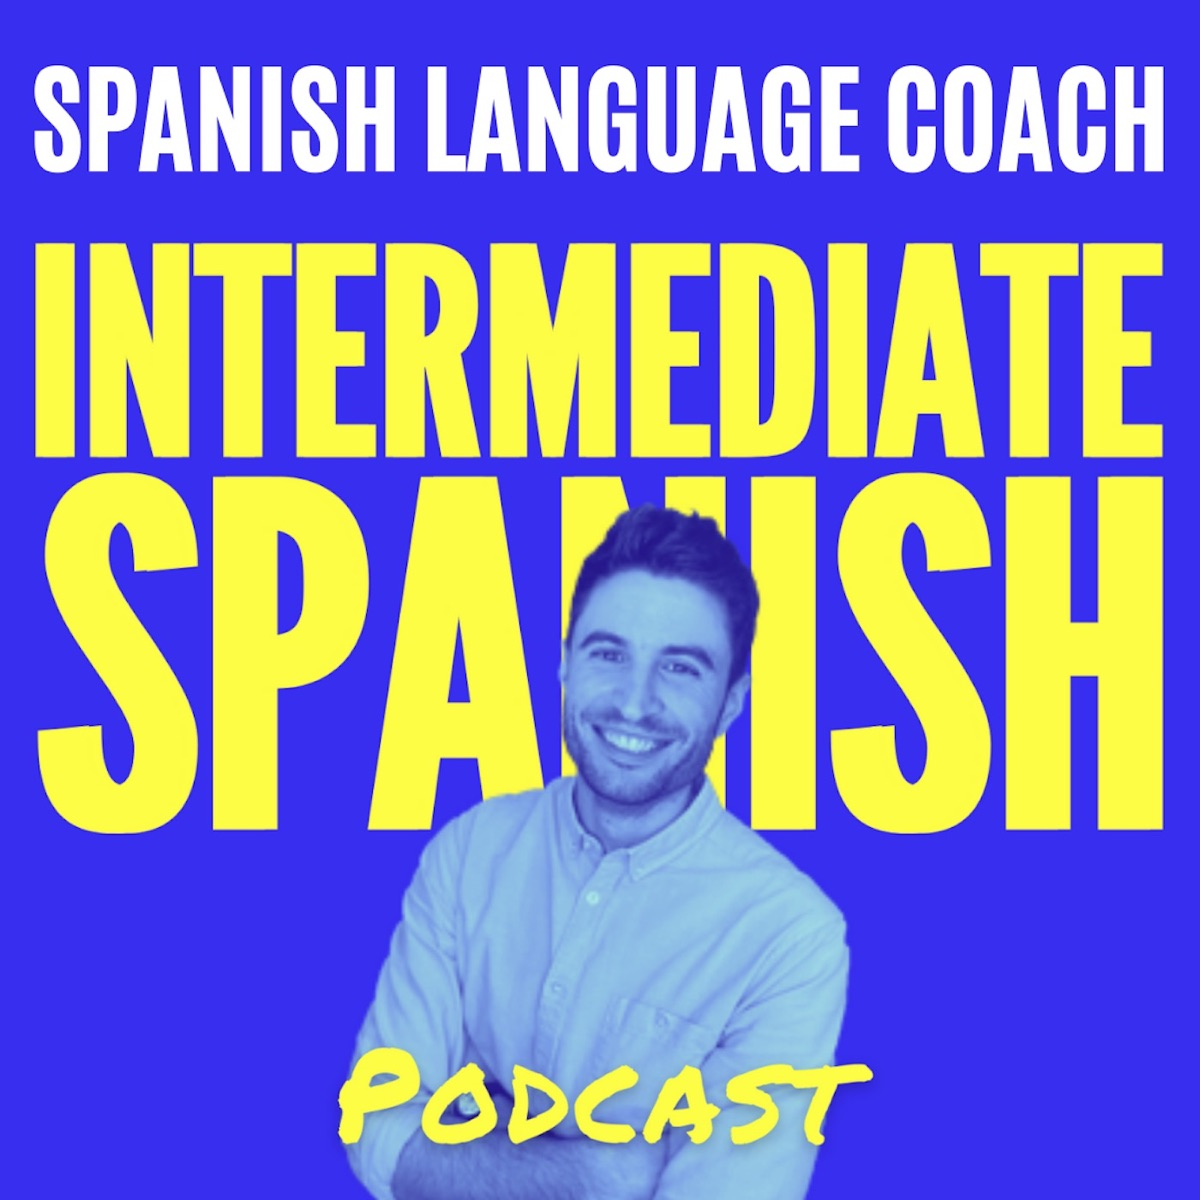 Intermediate Spanish Podcast - Español Intermedio